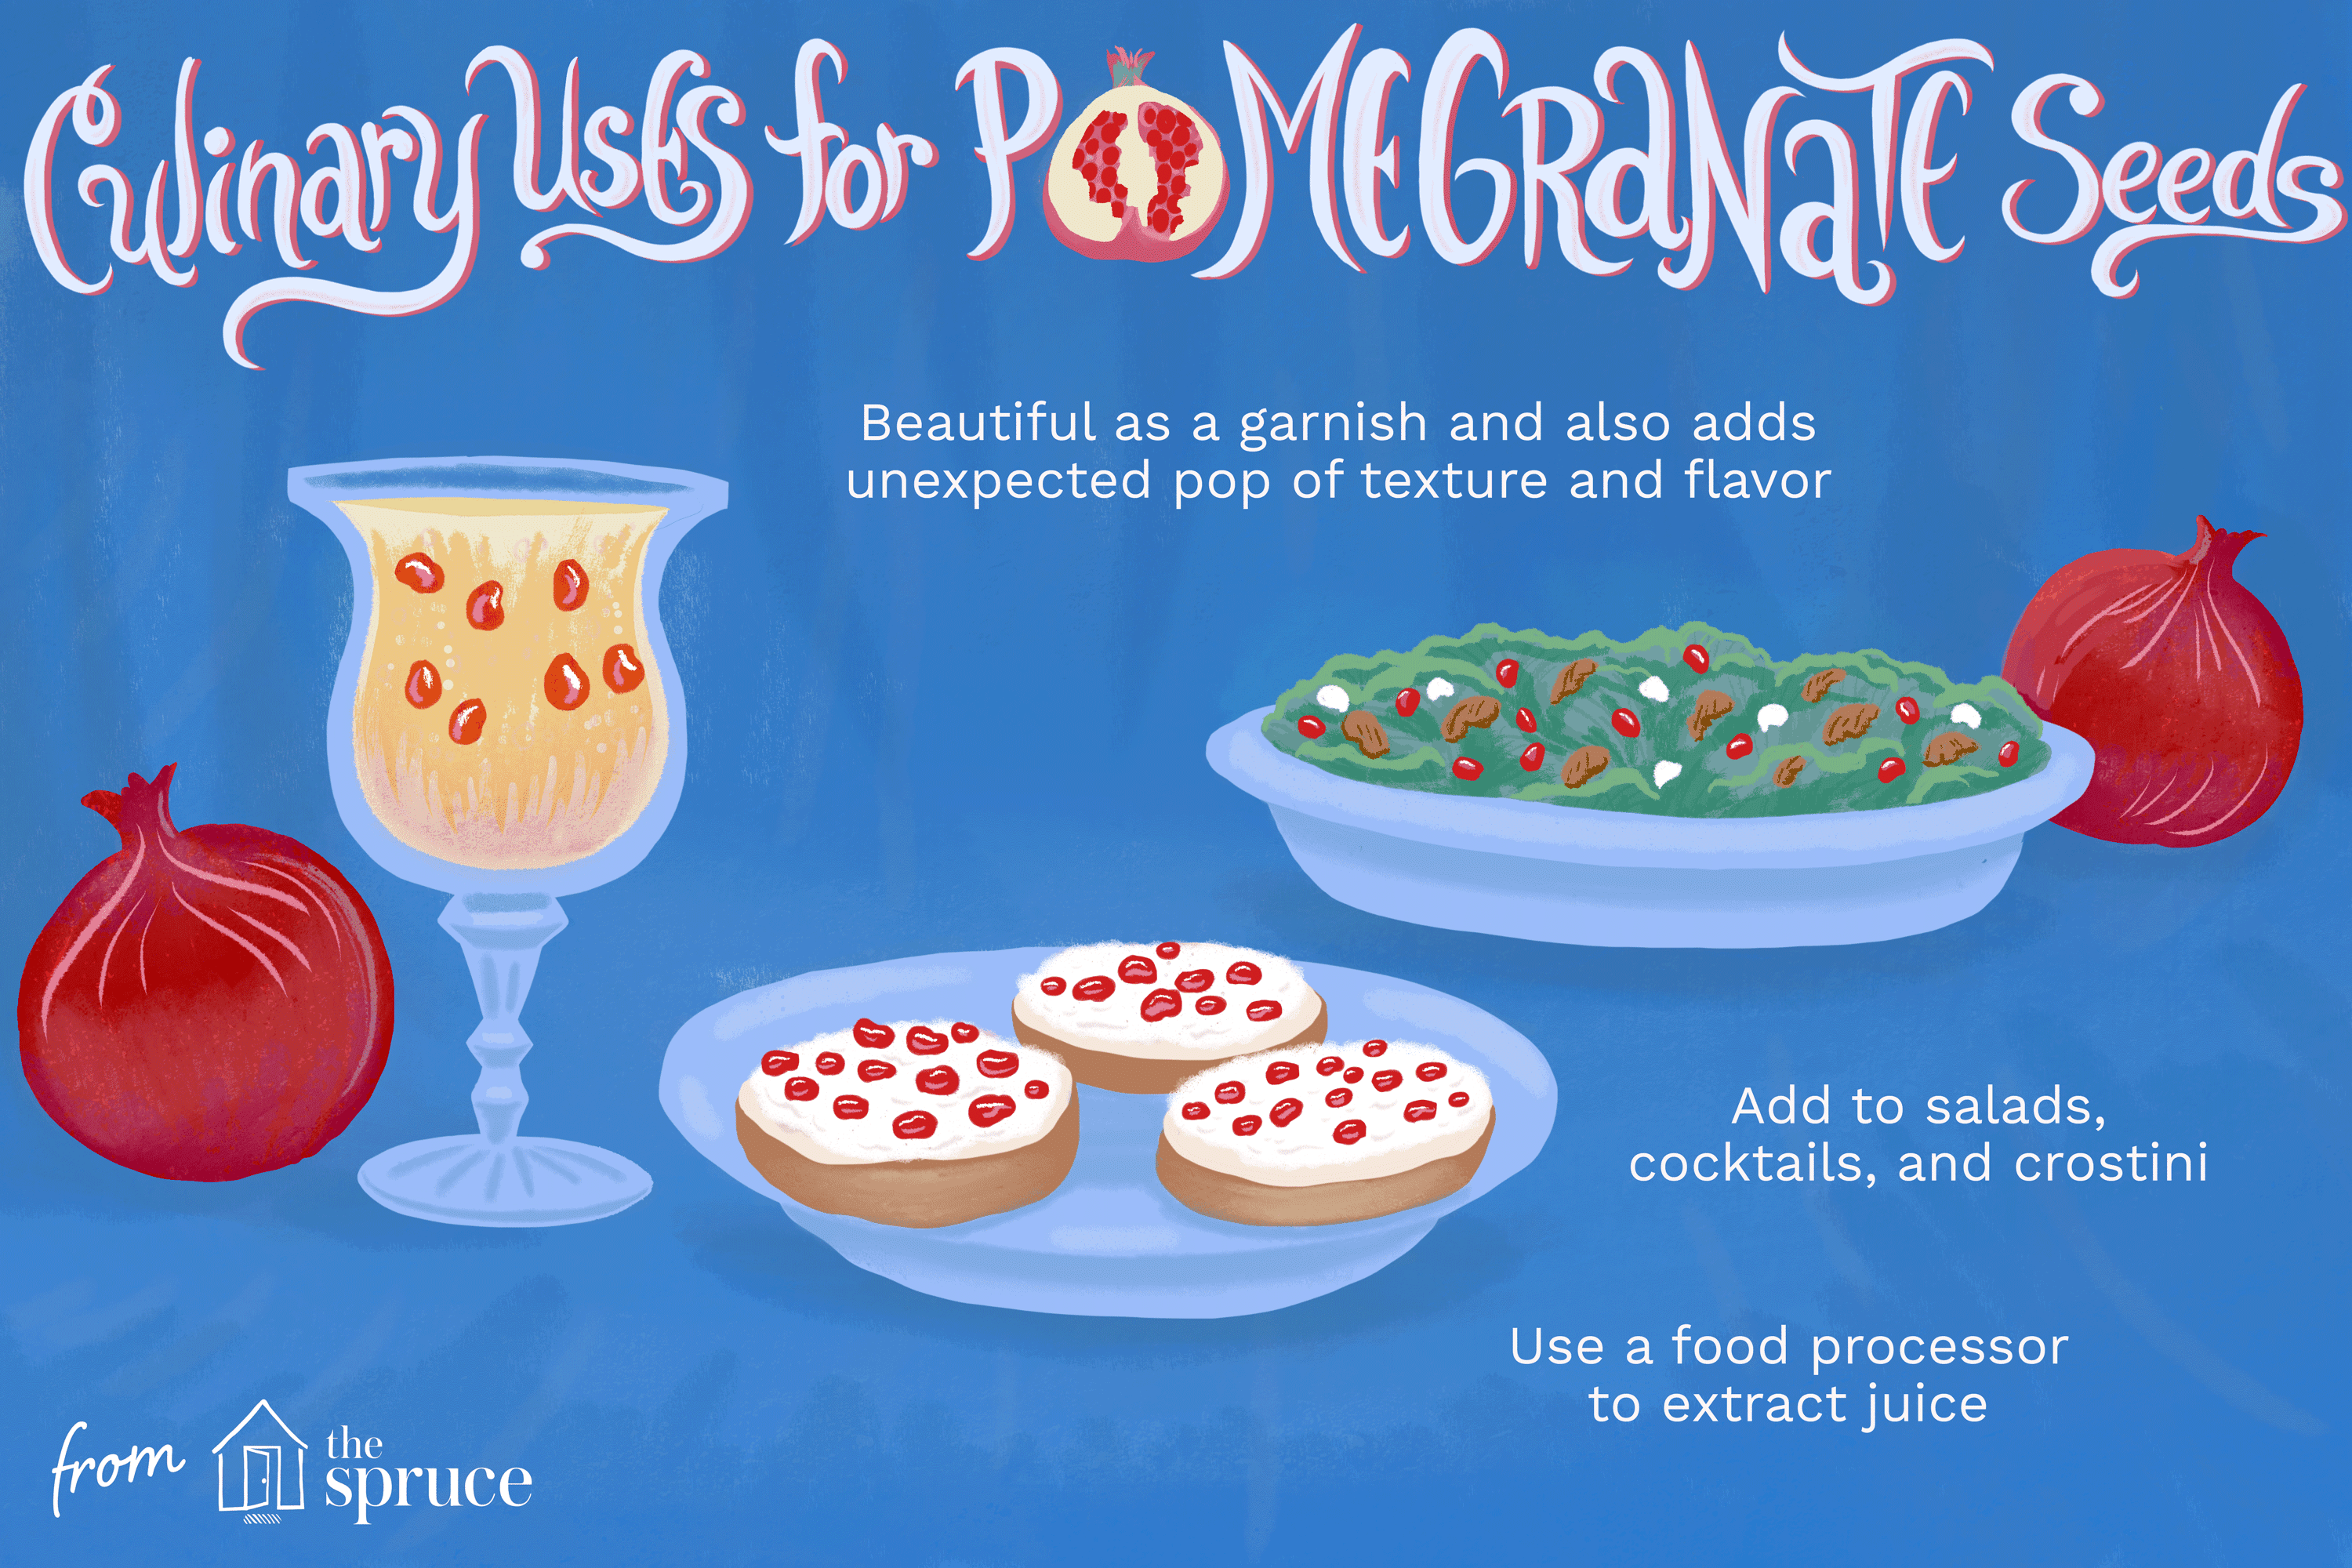 culinary uses for pomegranate seeds